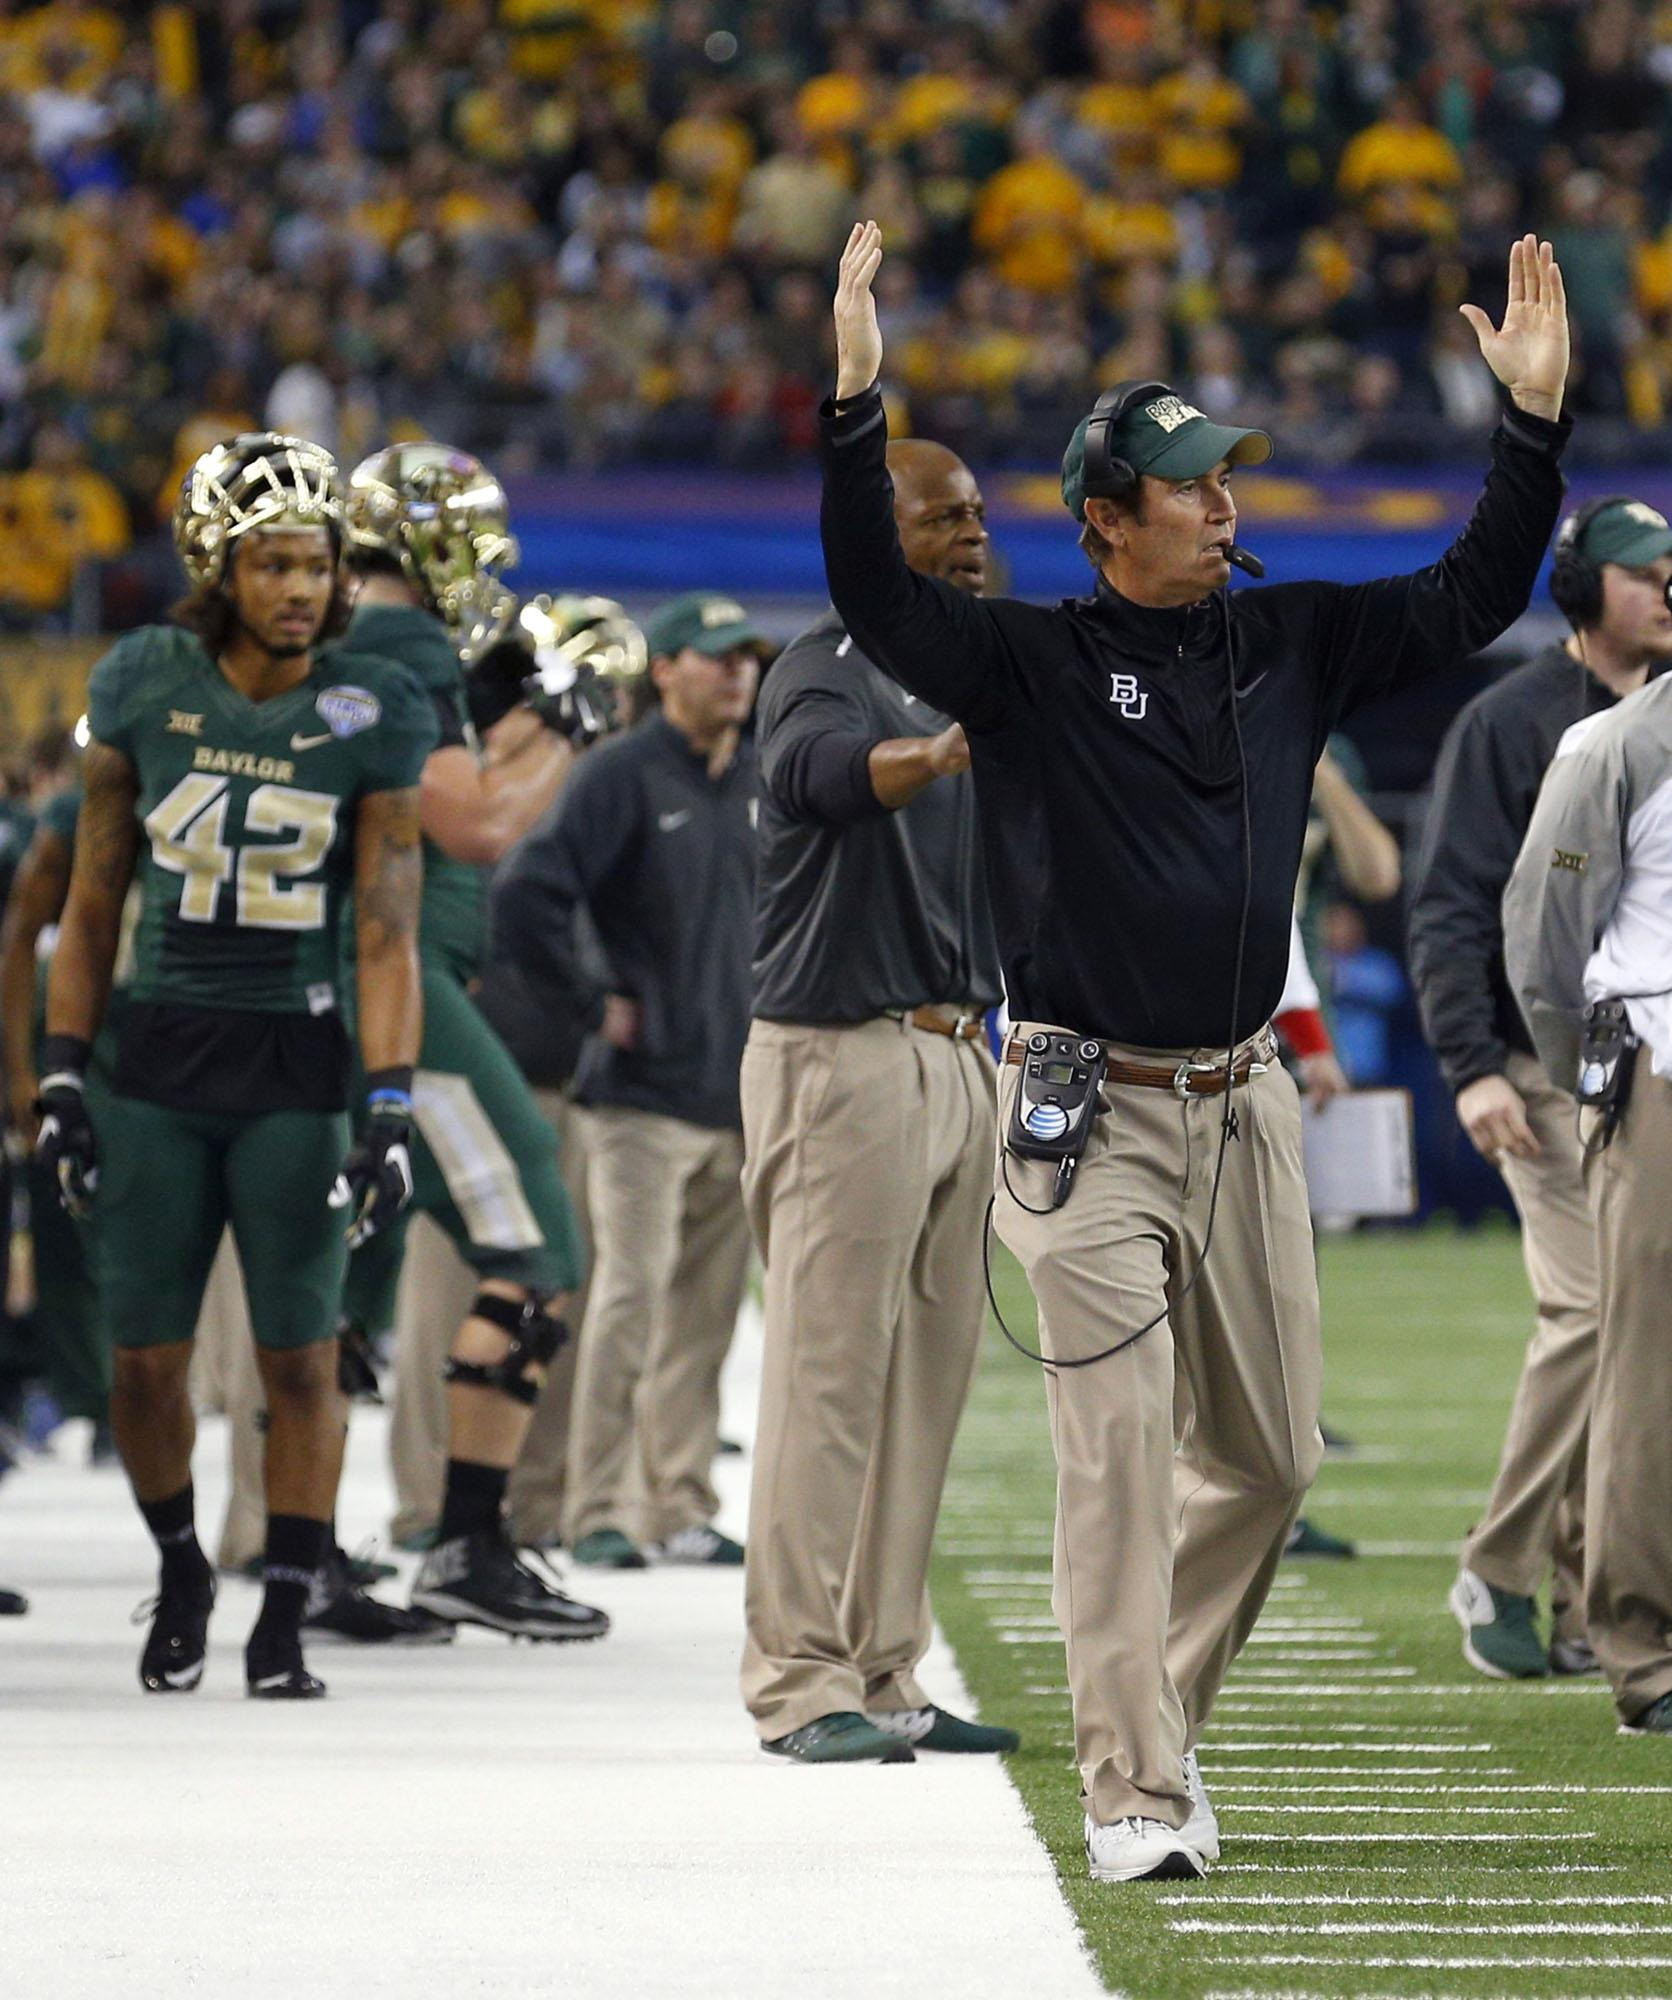 Following+Baylor+quarterback+Seth+Russell%E2%80%99s+season-ending++neck+injury%2C+can+the+Bears+pull+a+page+out+of+Ohio+State%E2%80%99s+2014+national++championship+run%3F